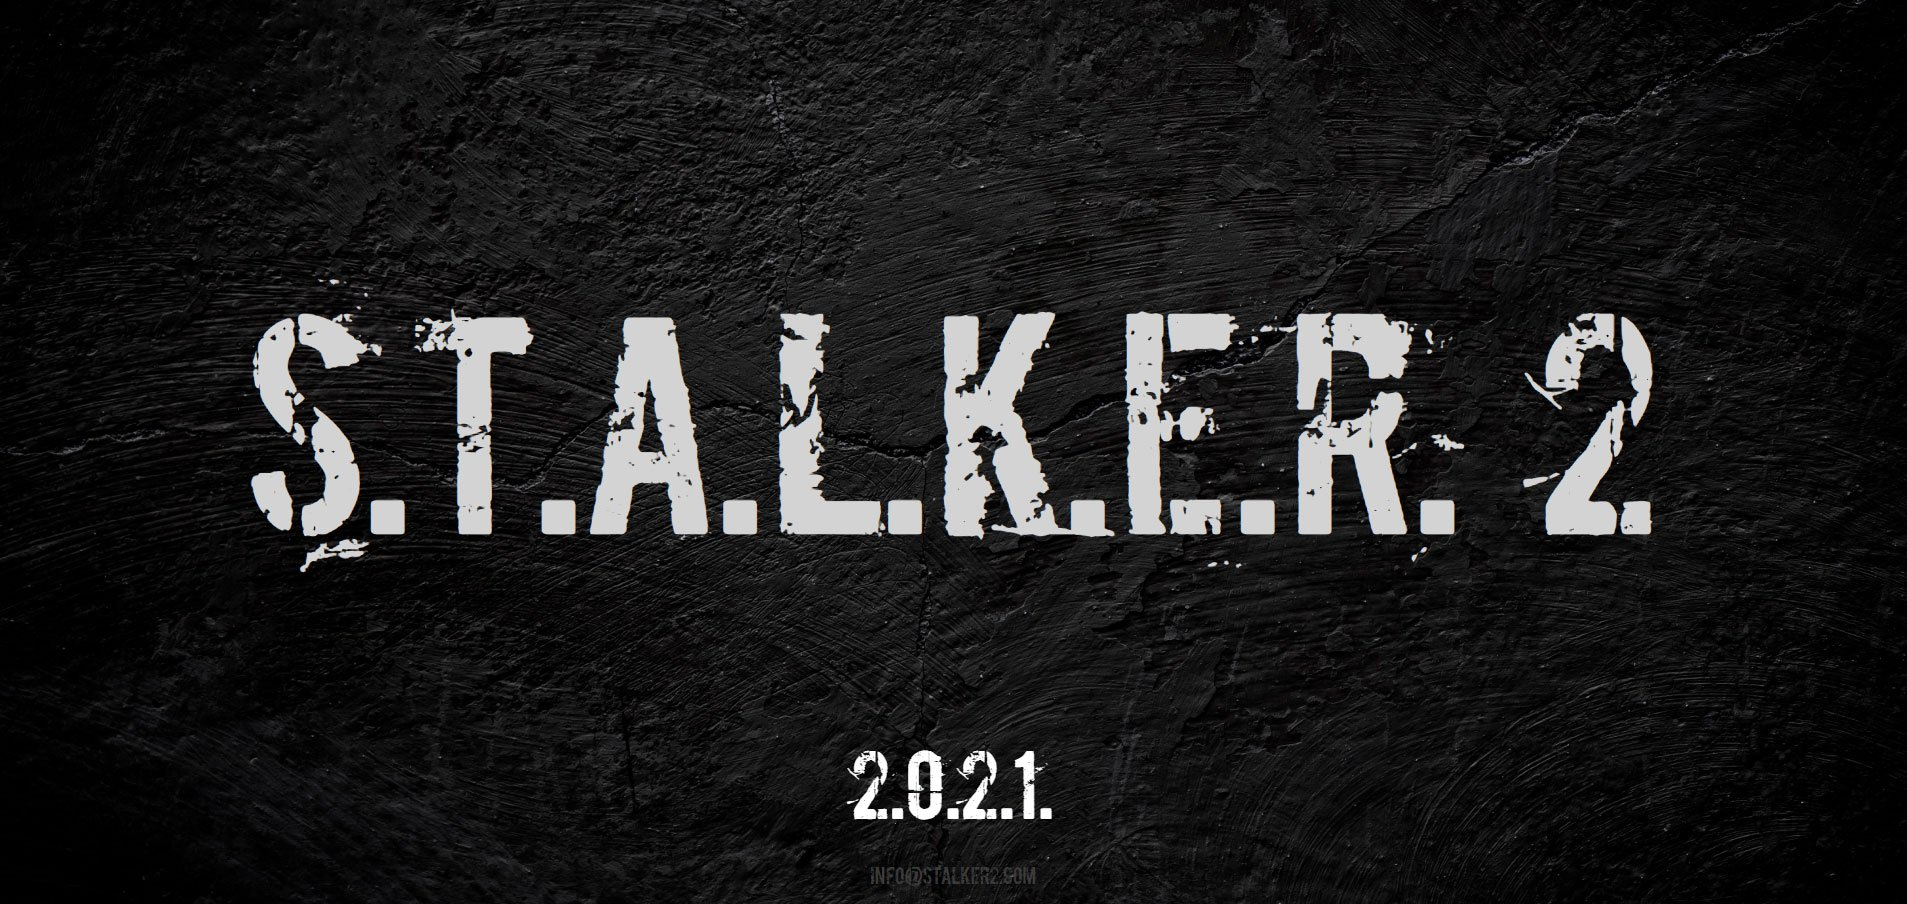 STALKER 2 is back, now aiming for a 2021 release. https://t.co/f6dRYzealx https://t.co/nhAfefoW8f